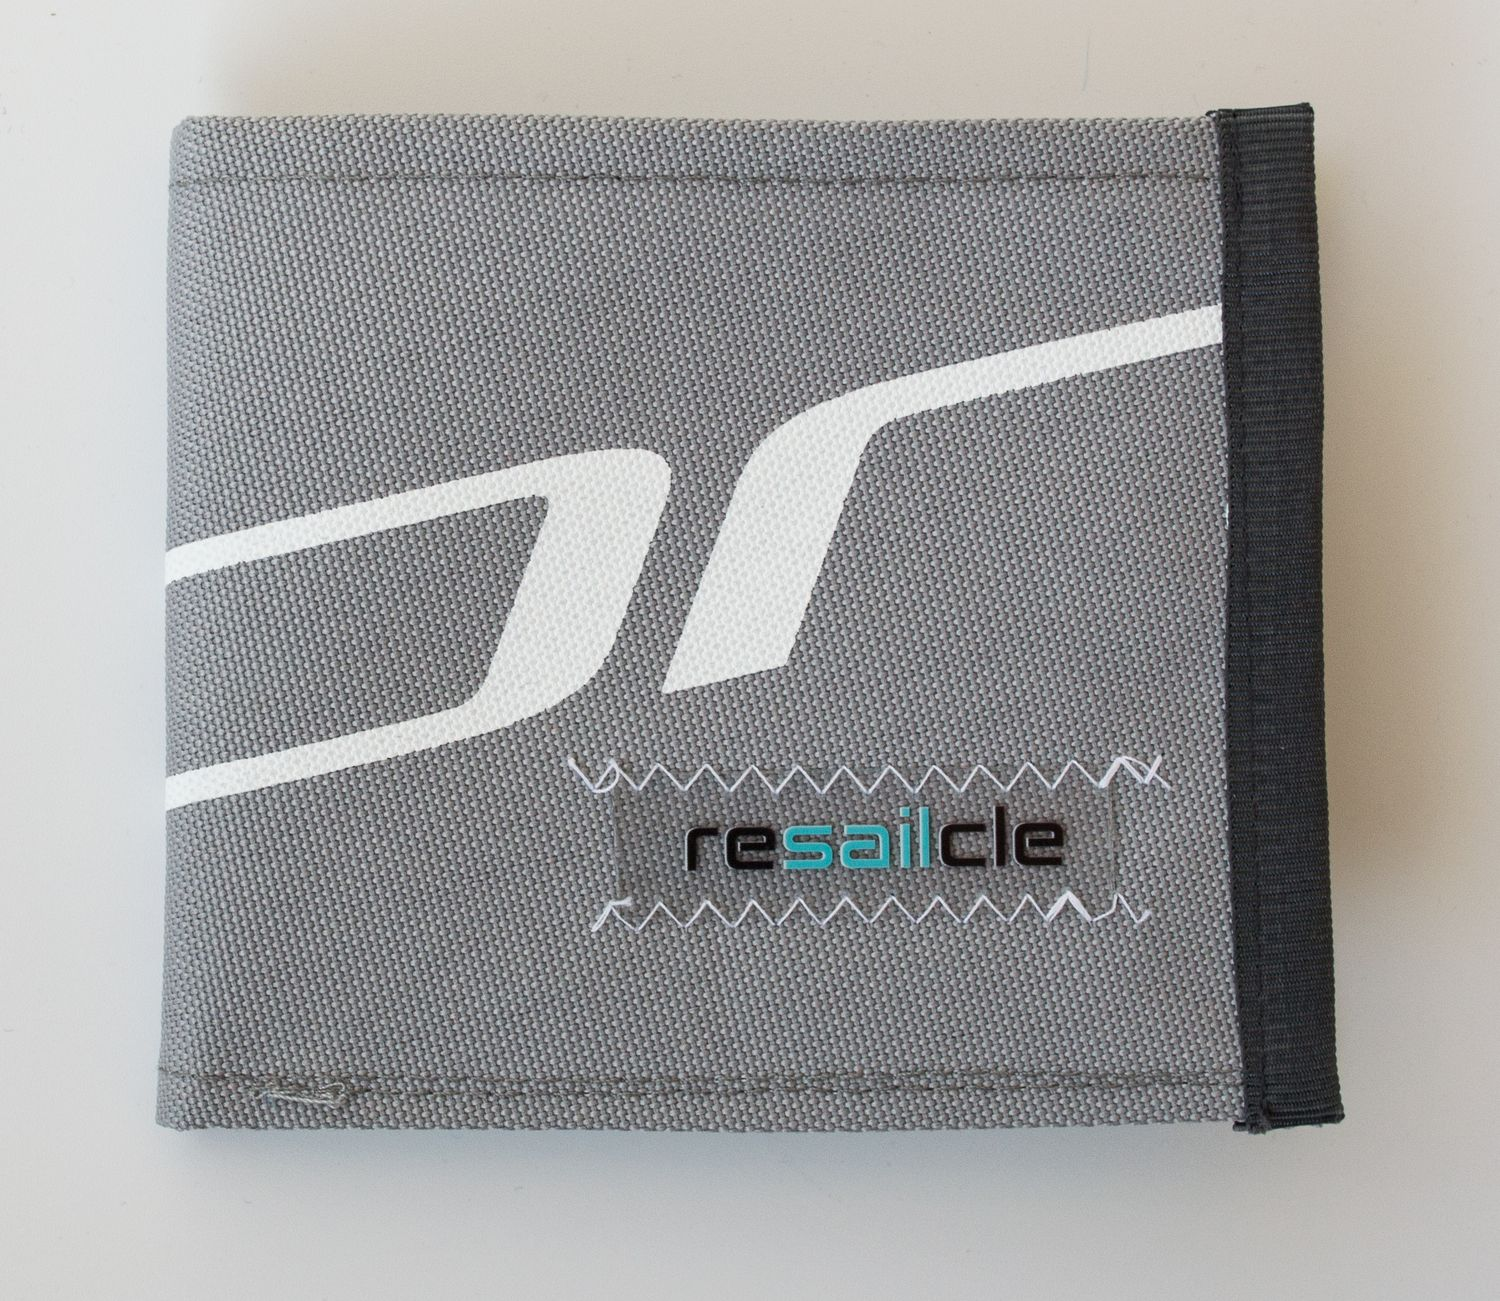 ReSailCle - north grey-blue wallet